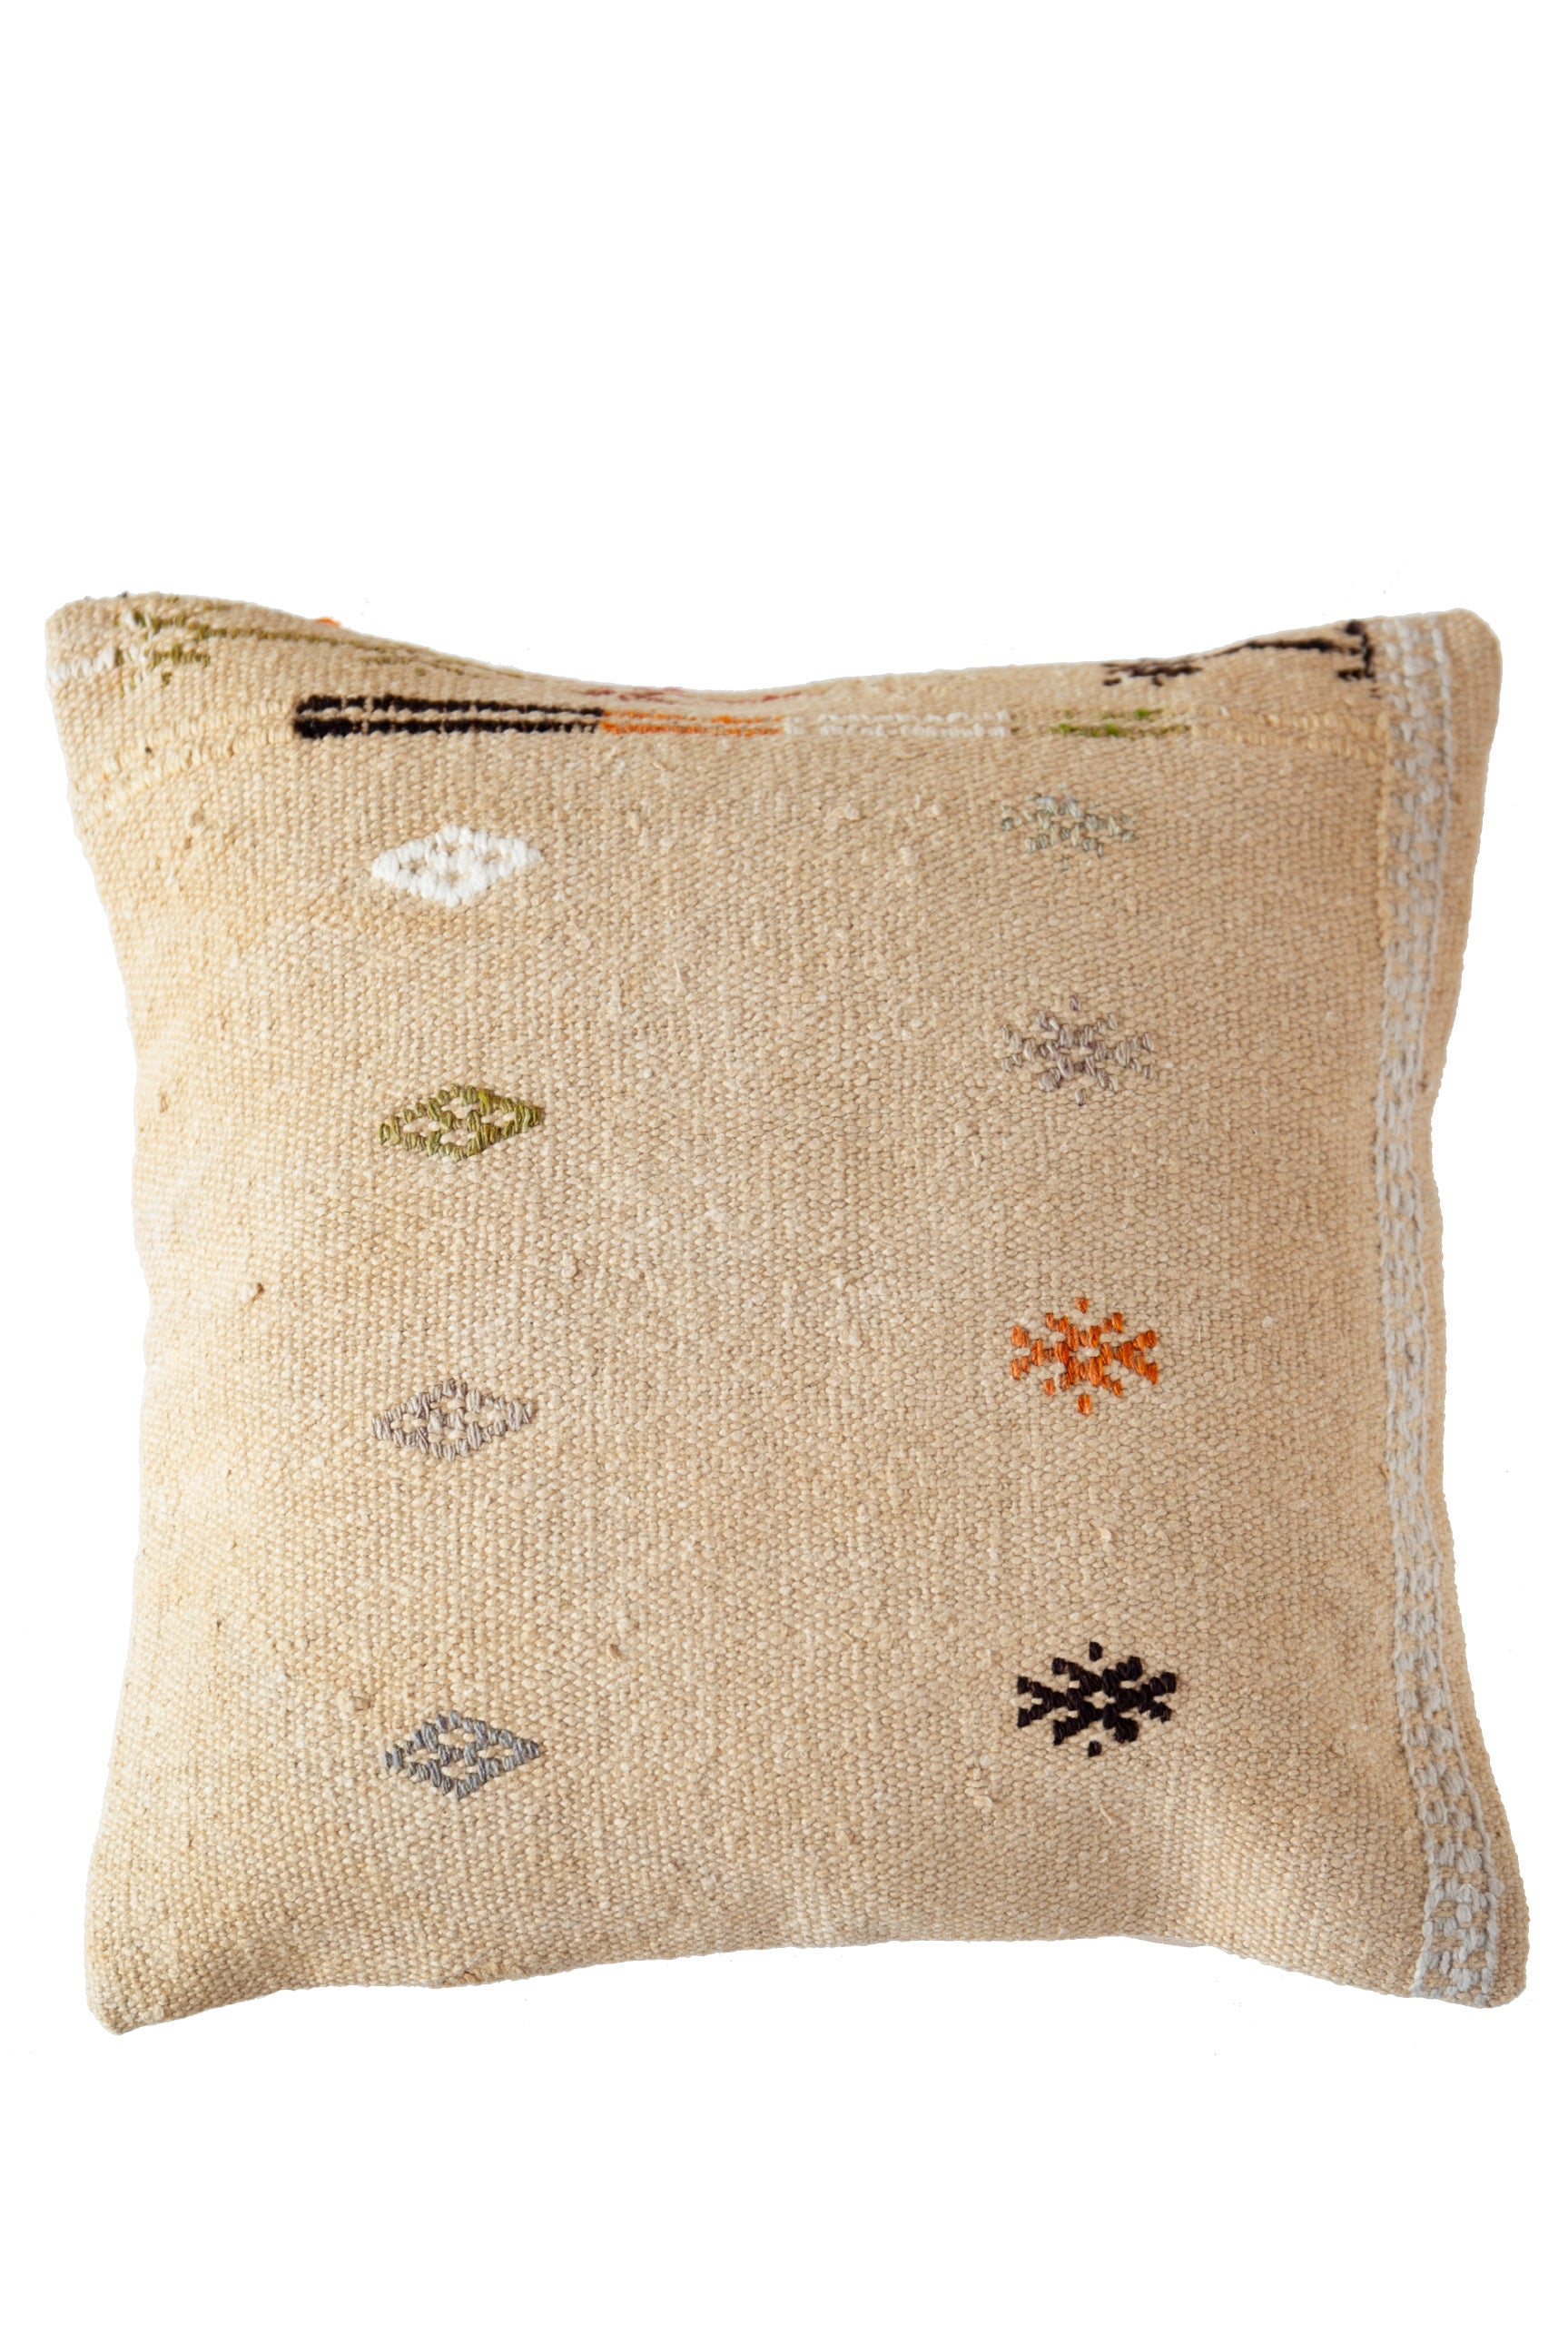 Wildflowers Turkish Kilim Cushion